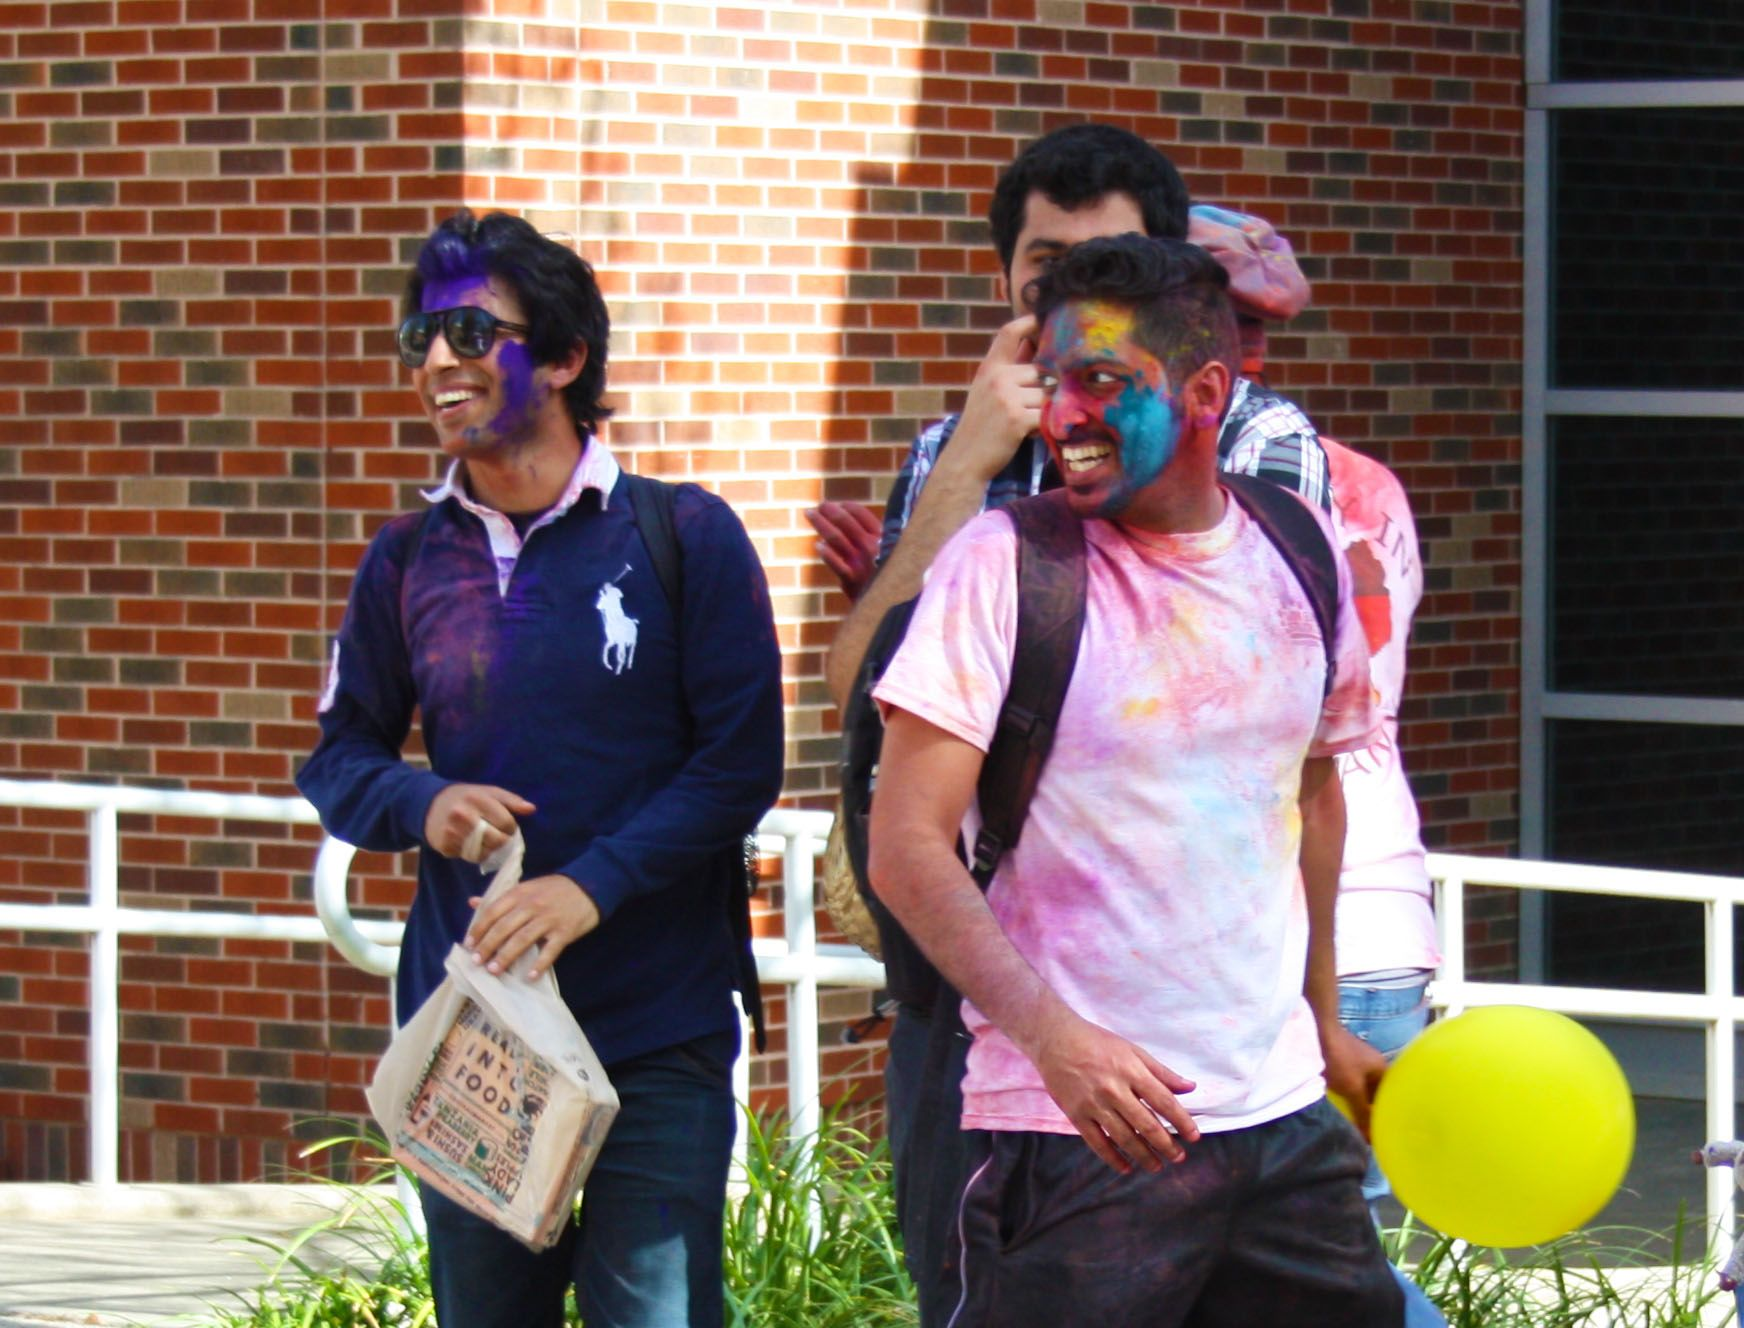 Students participate in the Festival of Colors, which concluded with an eruption of colorful Holi powder leaving students covered in various bright hues.